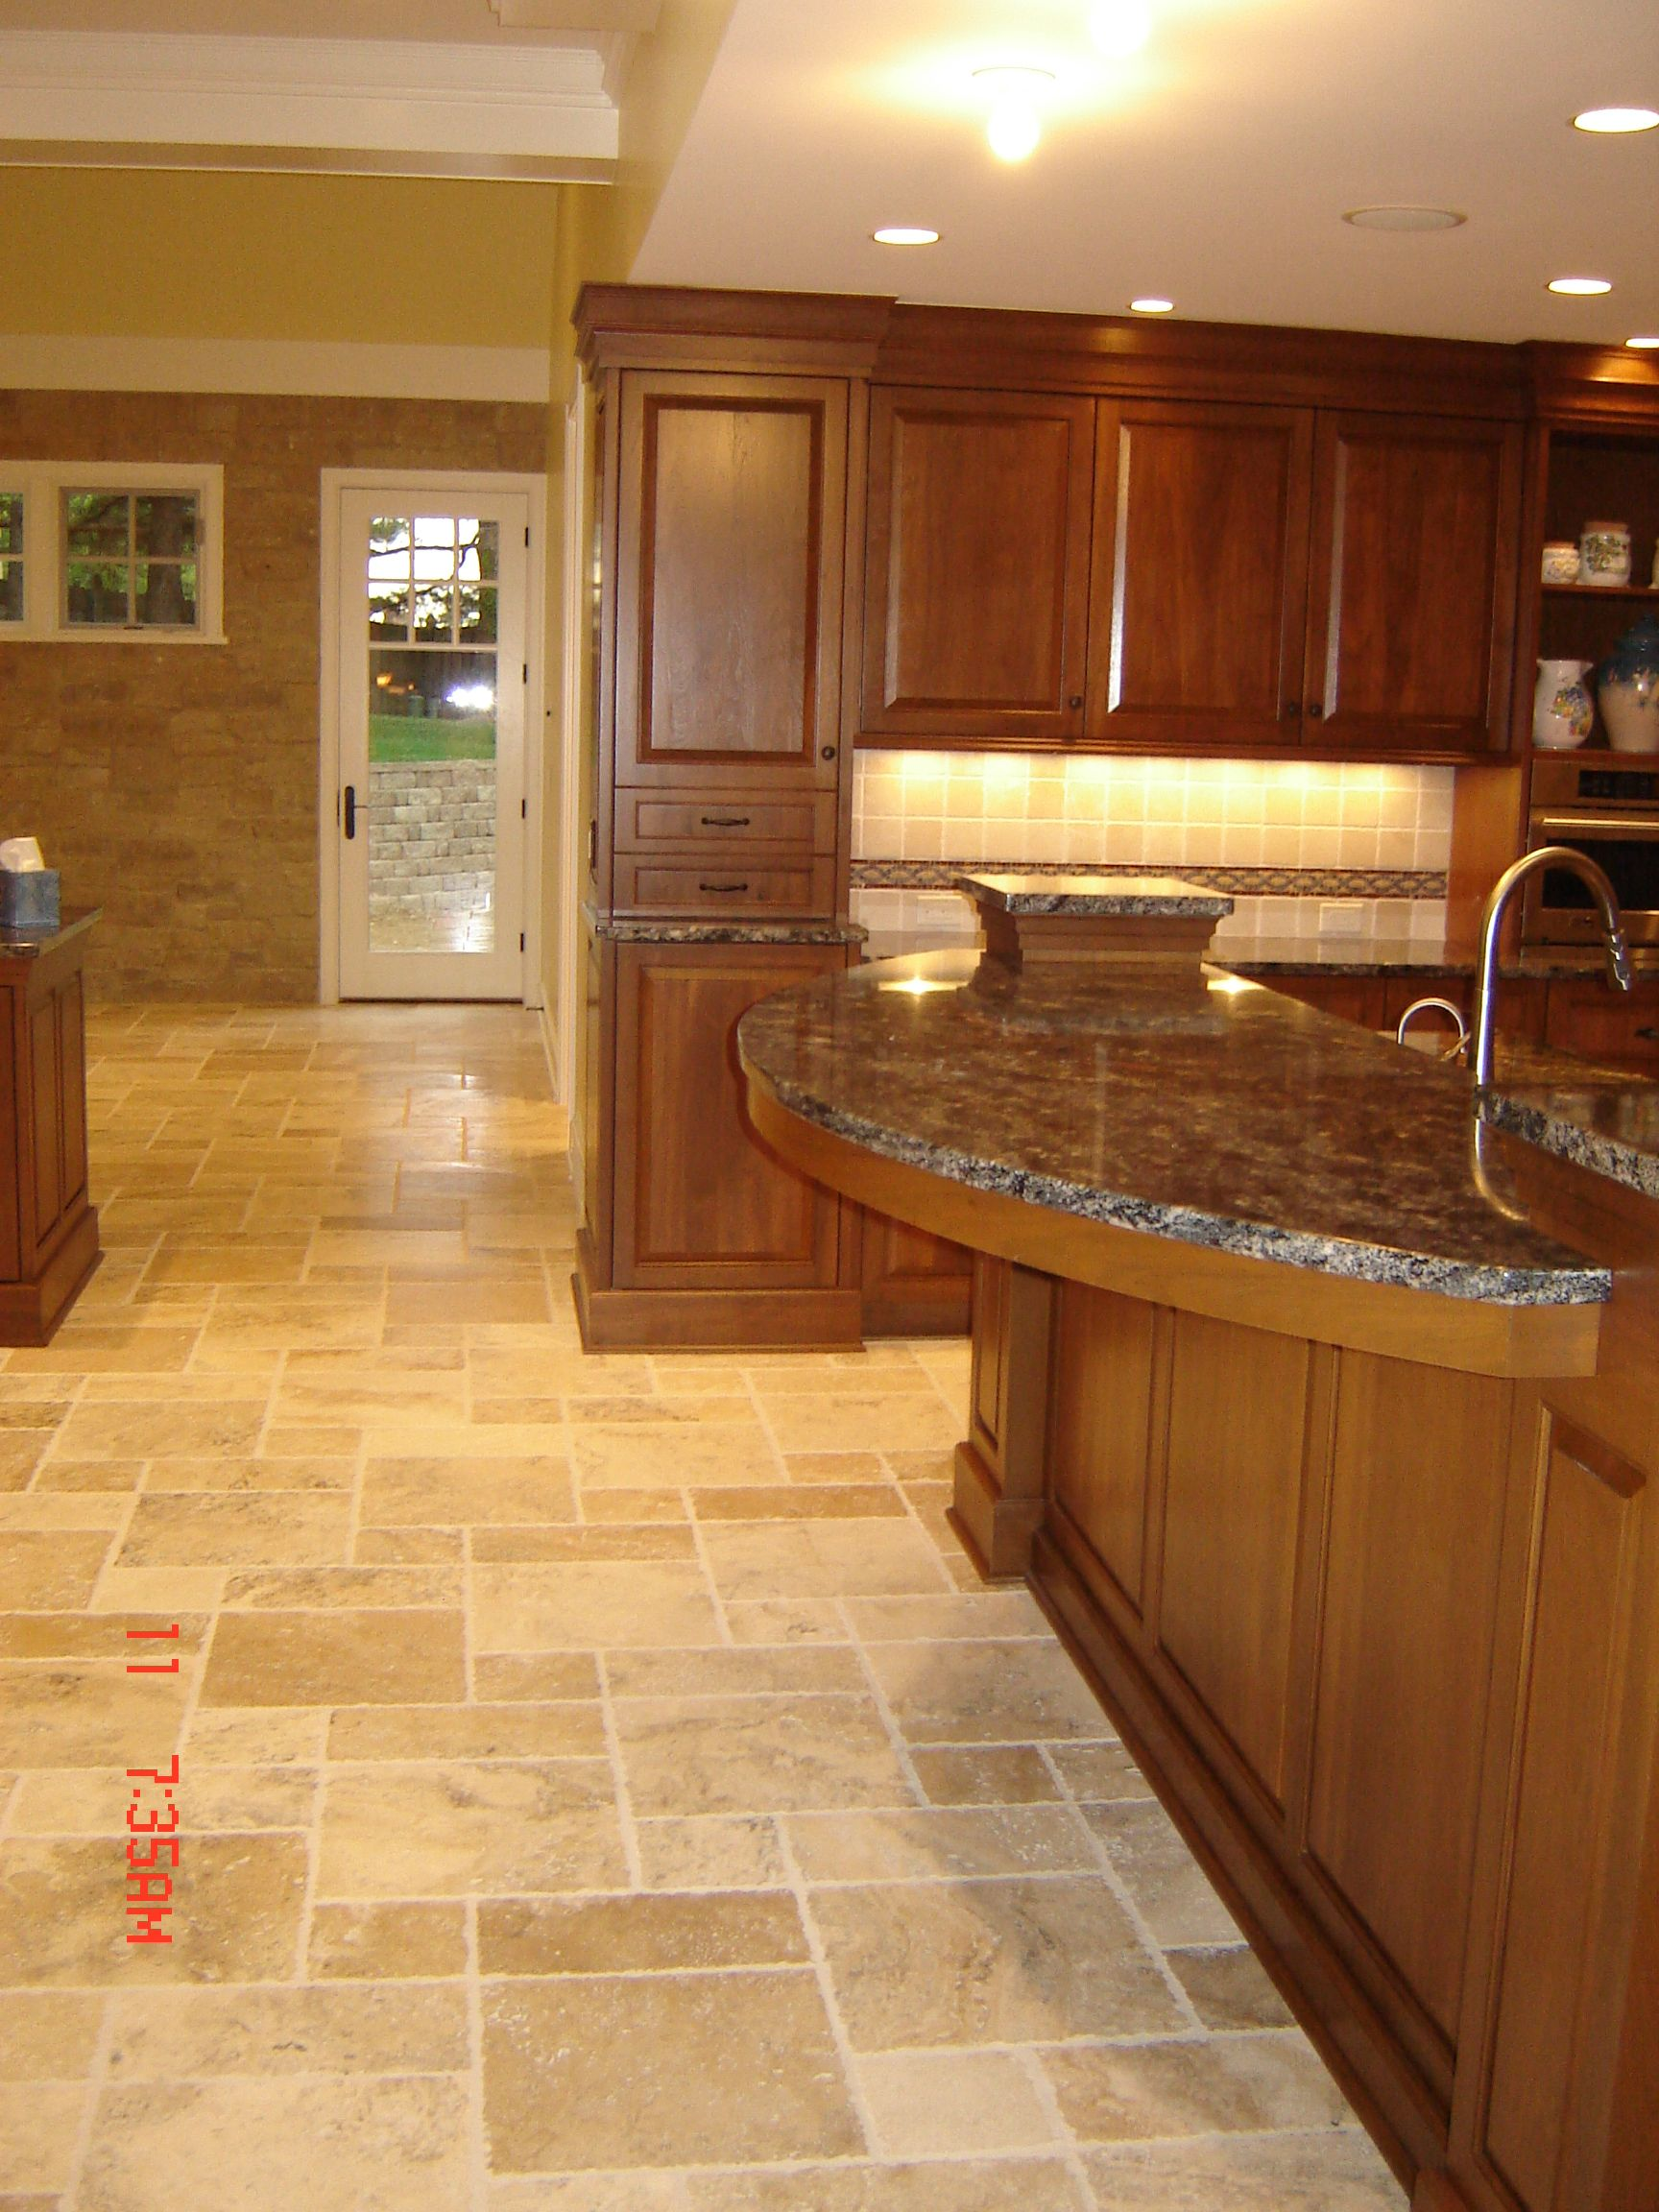 travertine floors over a heated floor system make this kitchen a great place to cook dream on kitchen remodel floor id=56573